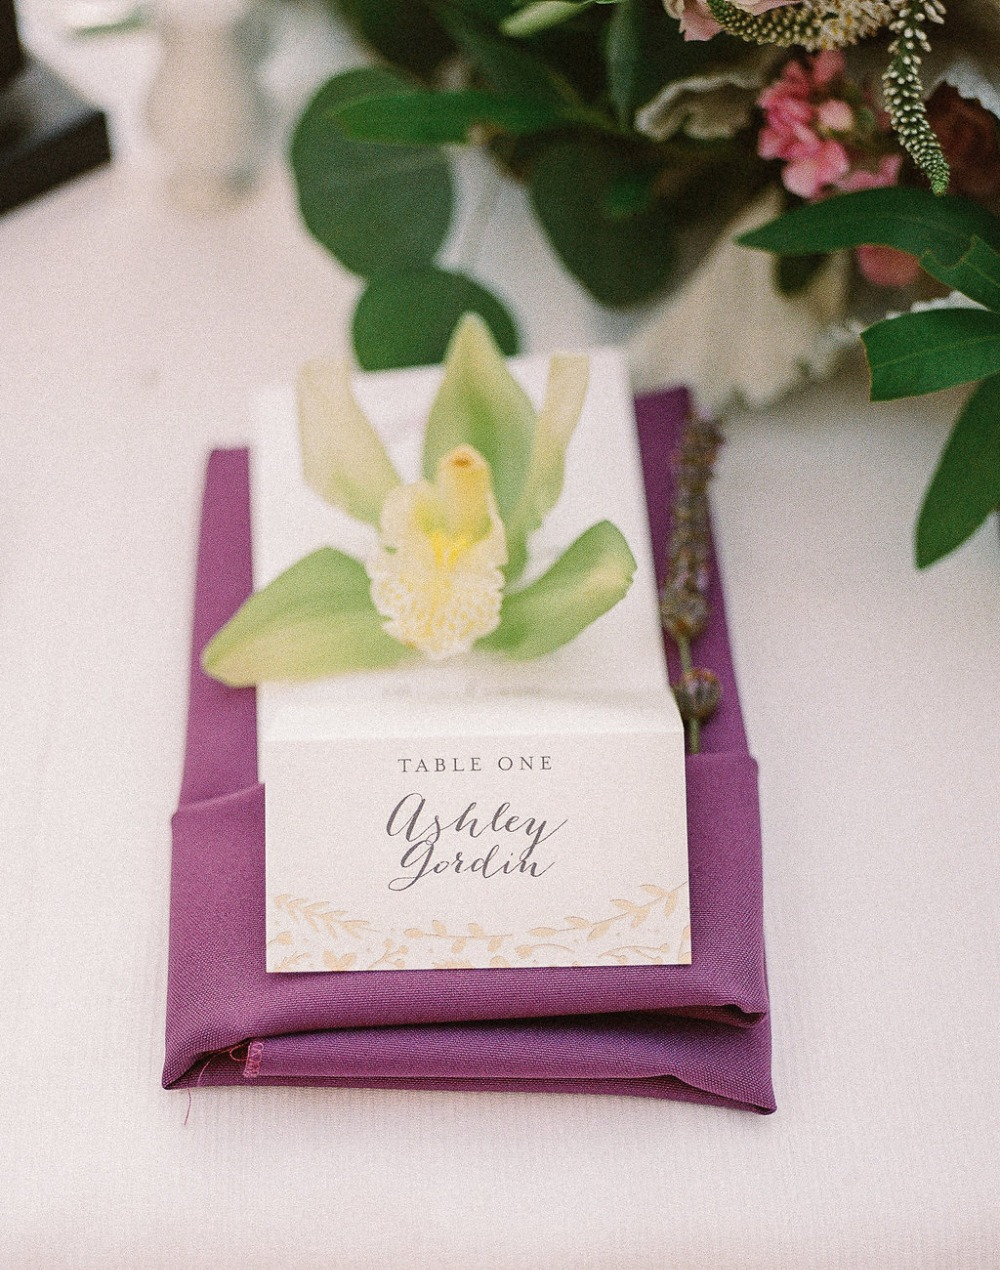 Elegant escort card design